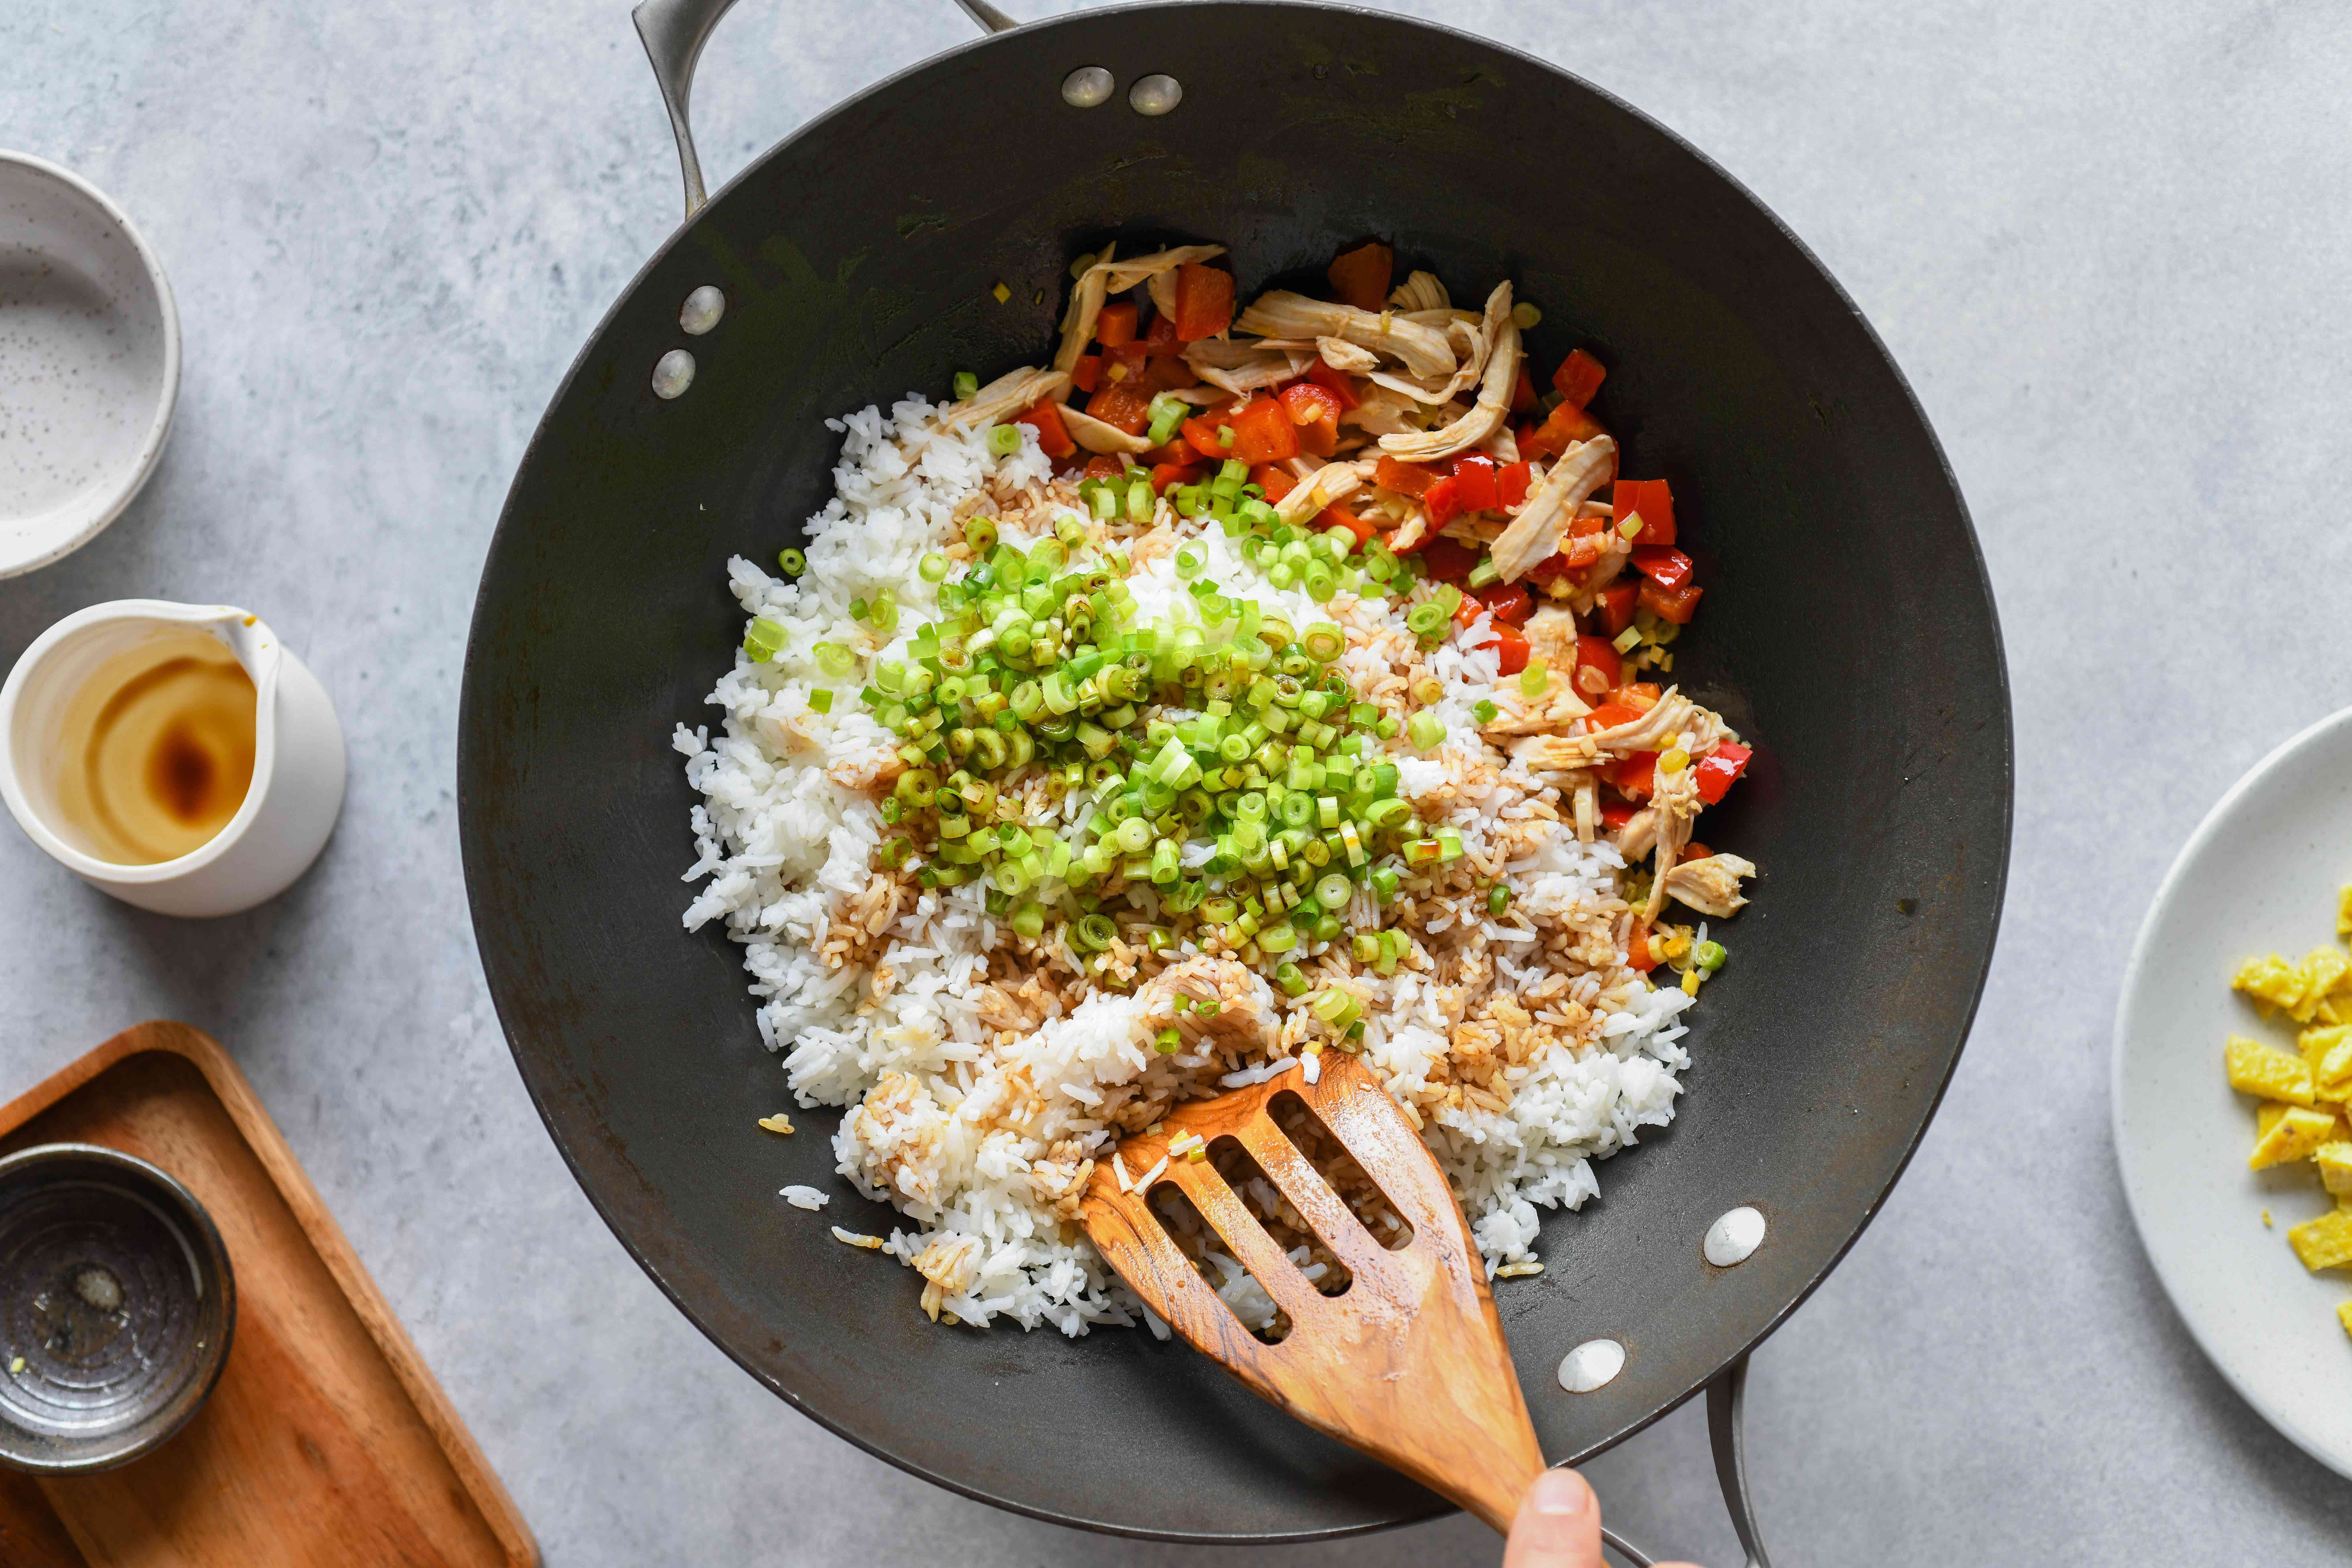 cooked rice, scallions, and soy sauce with peppers and chicken in a wok